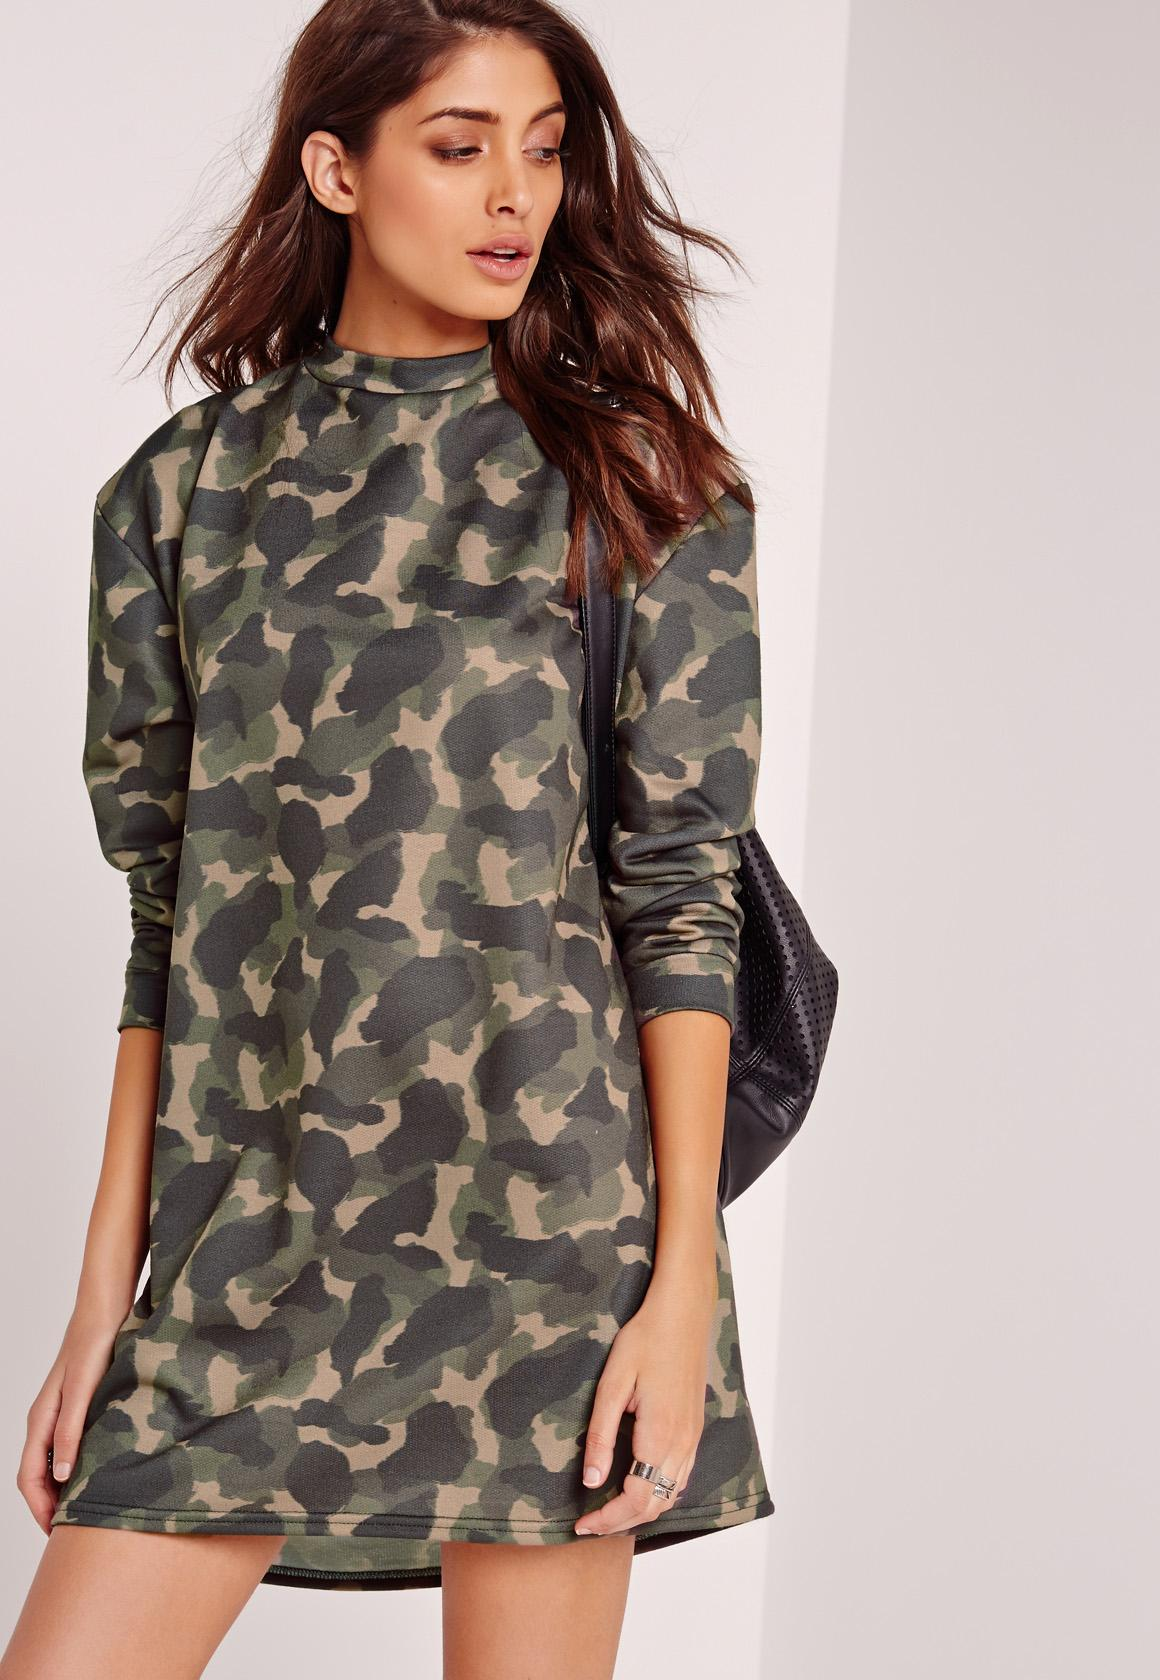 Camo Oversized Sweater Dress Green | Missguided